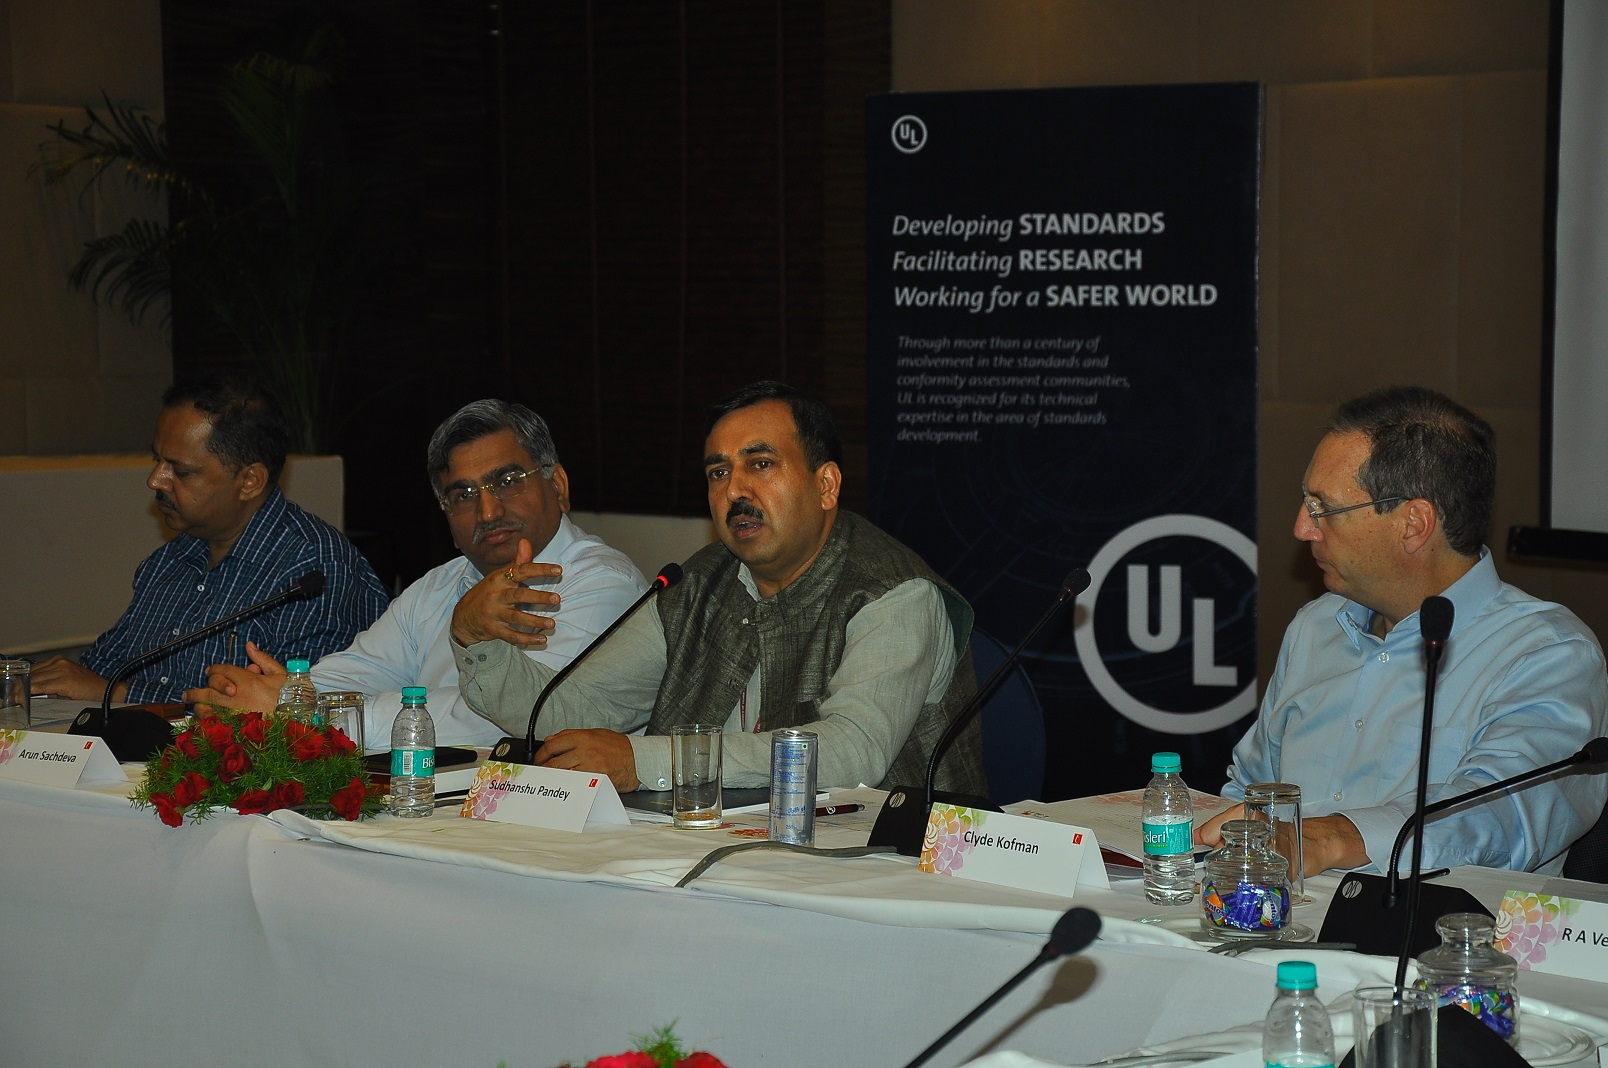 UL Standards with stakeholders in India